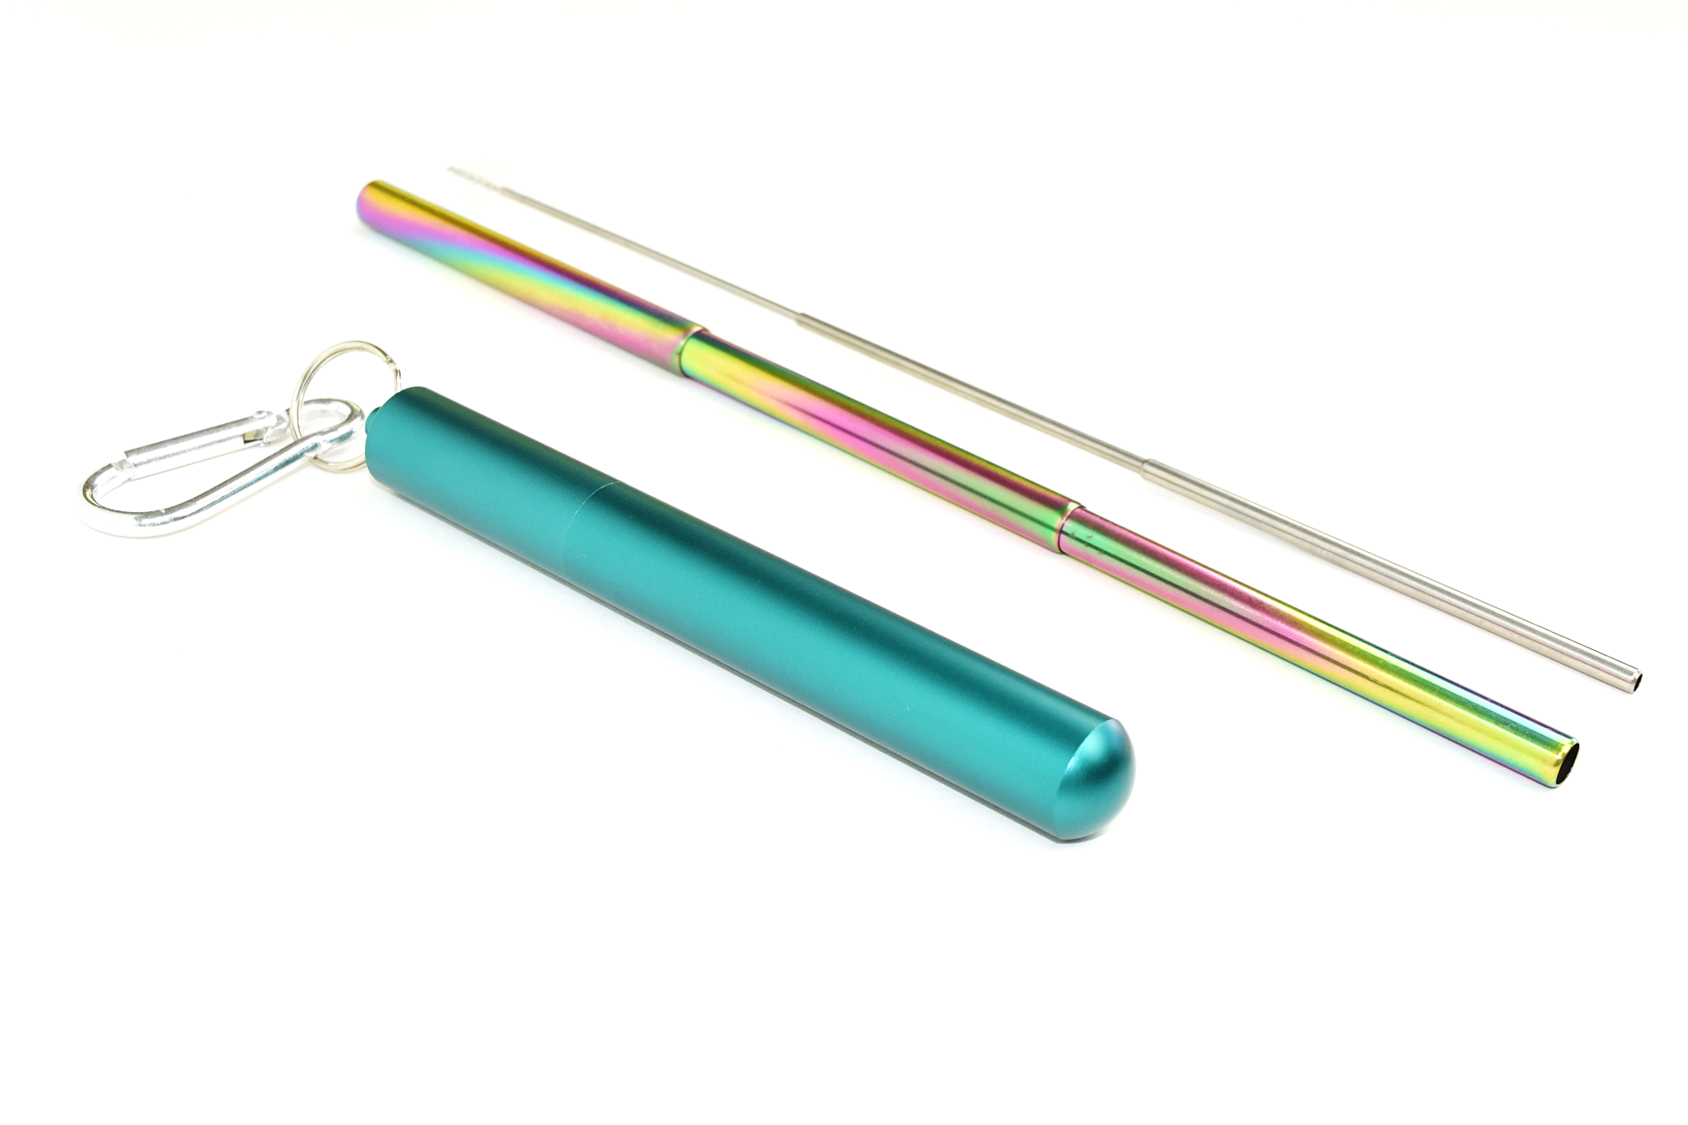 Extendable Multi-Colored Stainless Steel Straw in Teal Case : Travel Collection